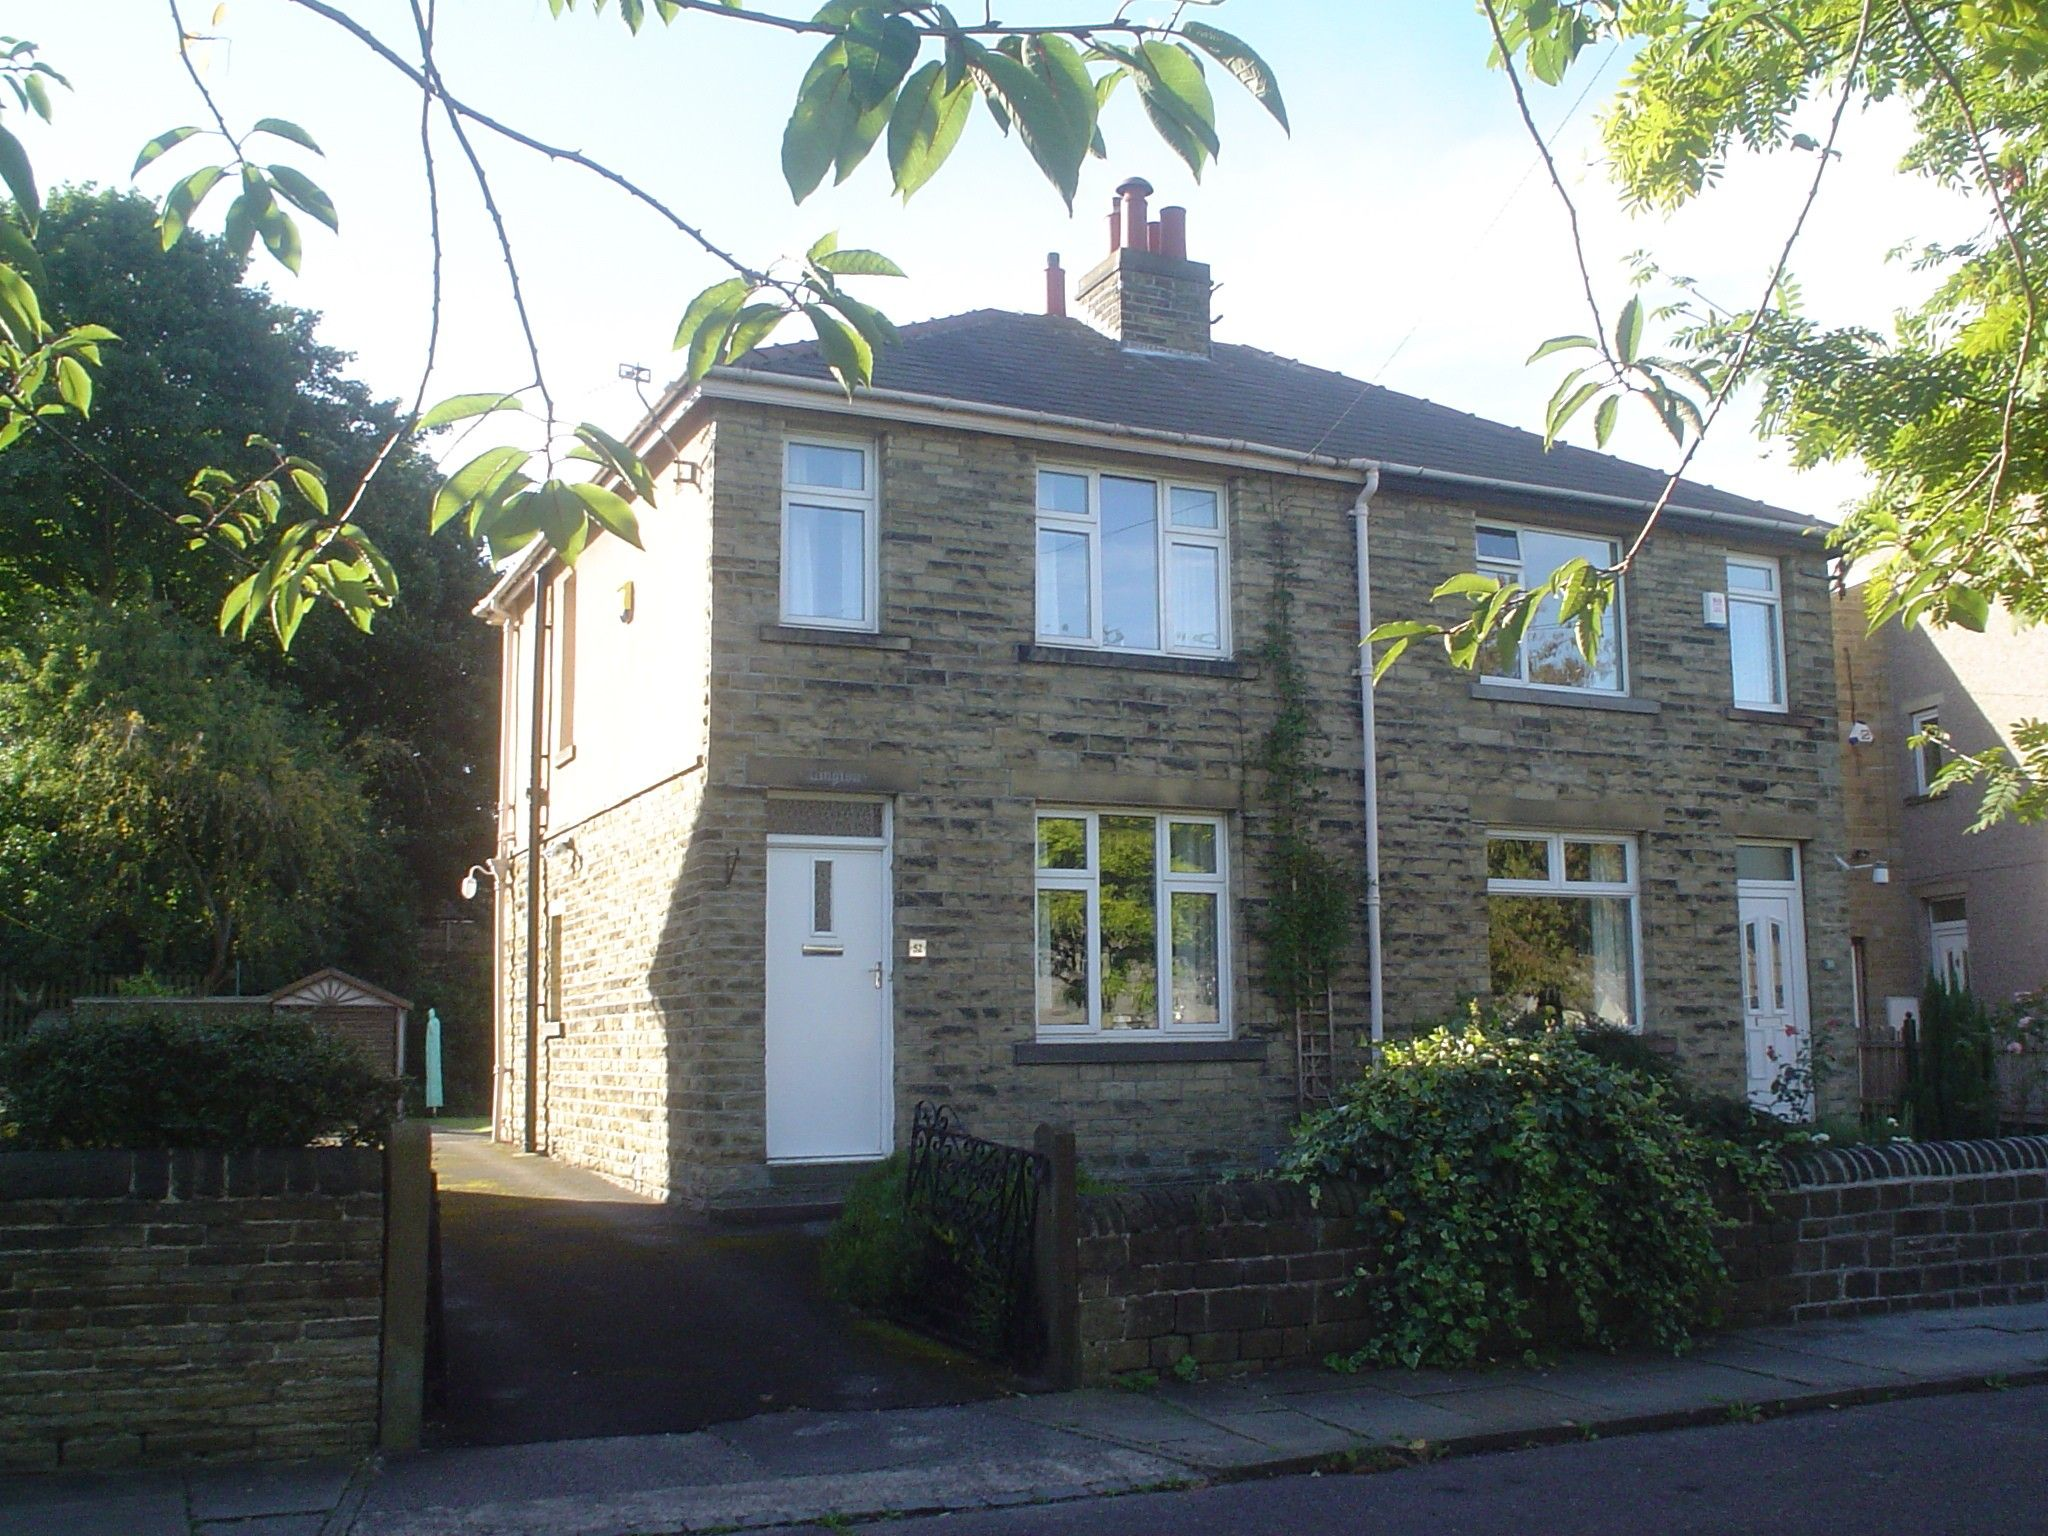 2 bedroom semi-detached house To Let in Brighouse - Photograph 1.